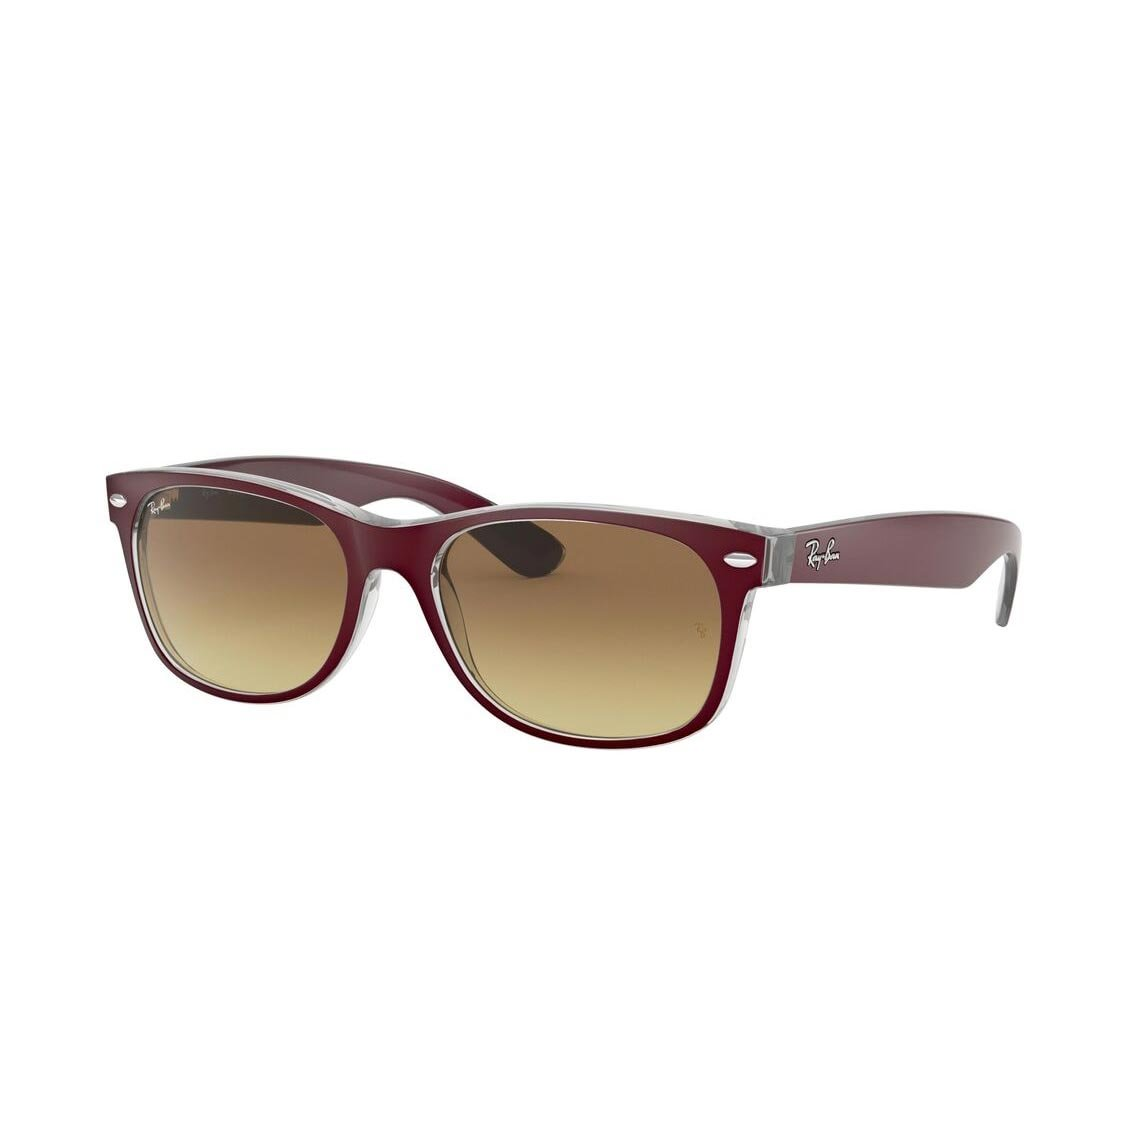 Ray-Ban New Wayfarer RB2132 605485 55